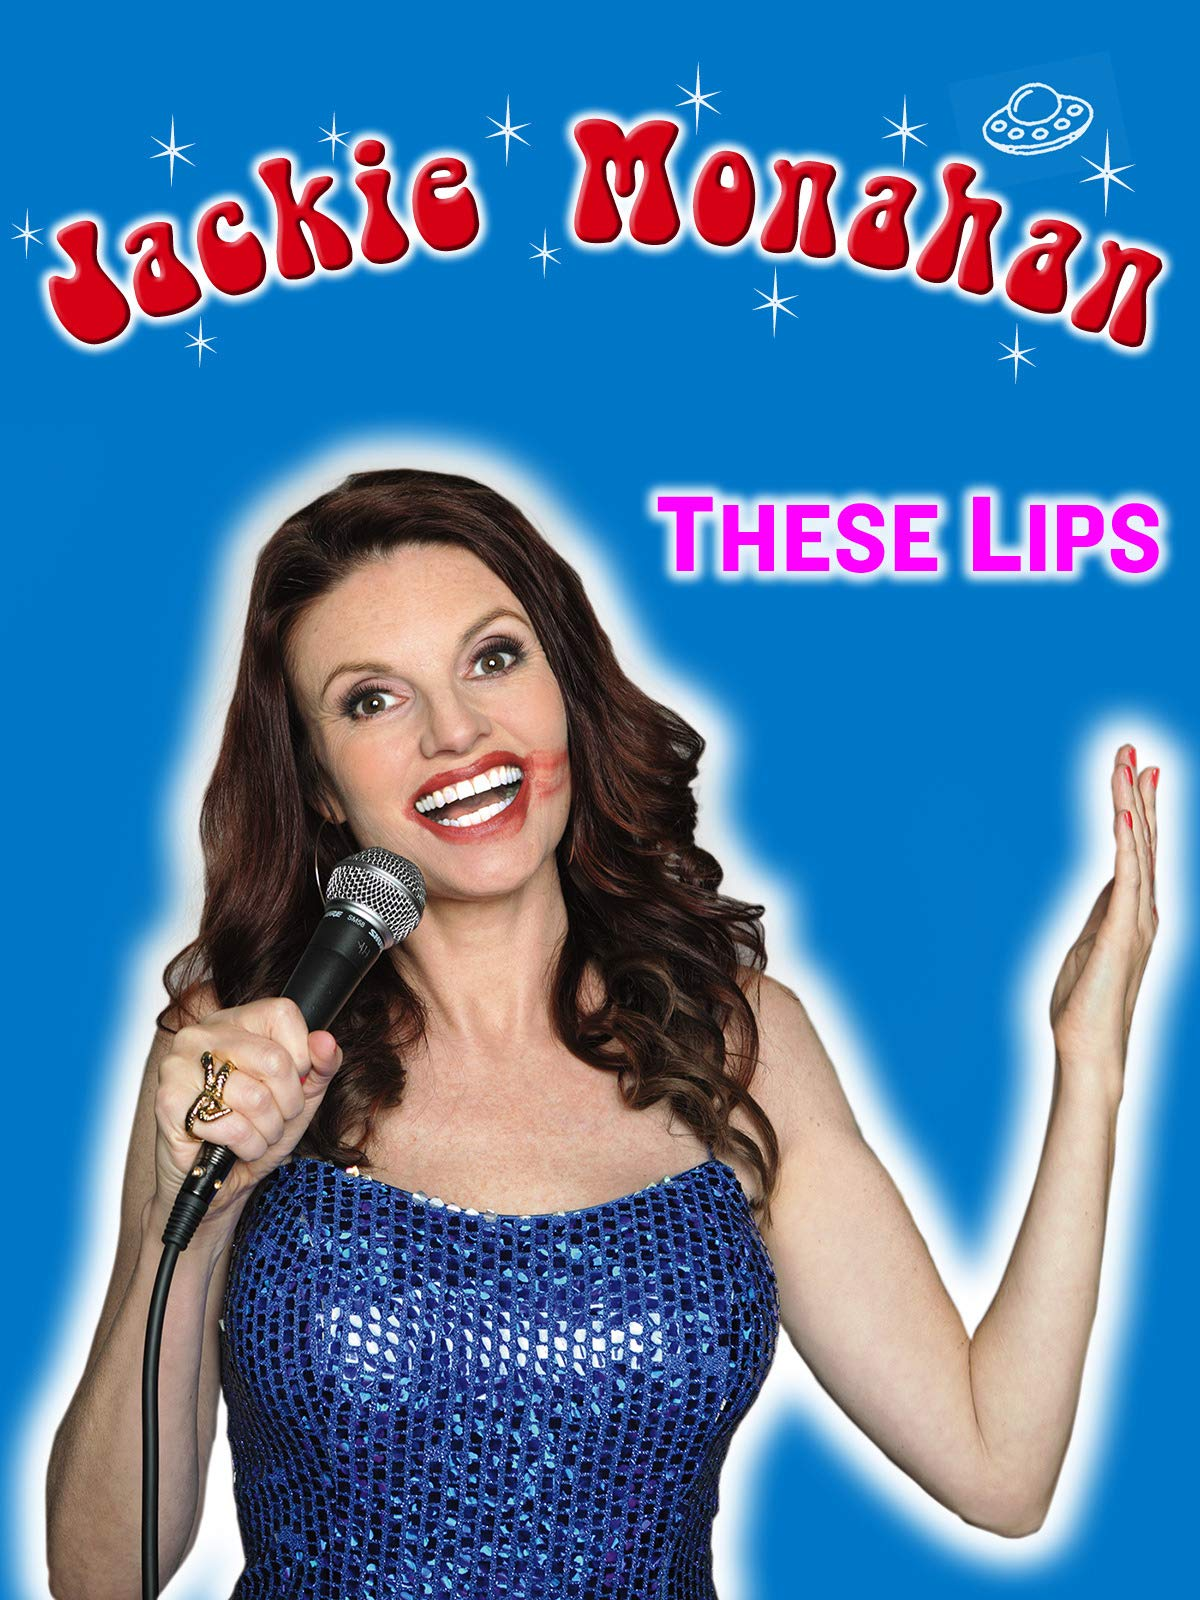 Jackie Monahan - These Lips